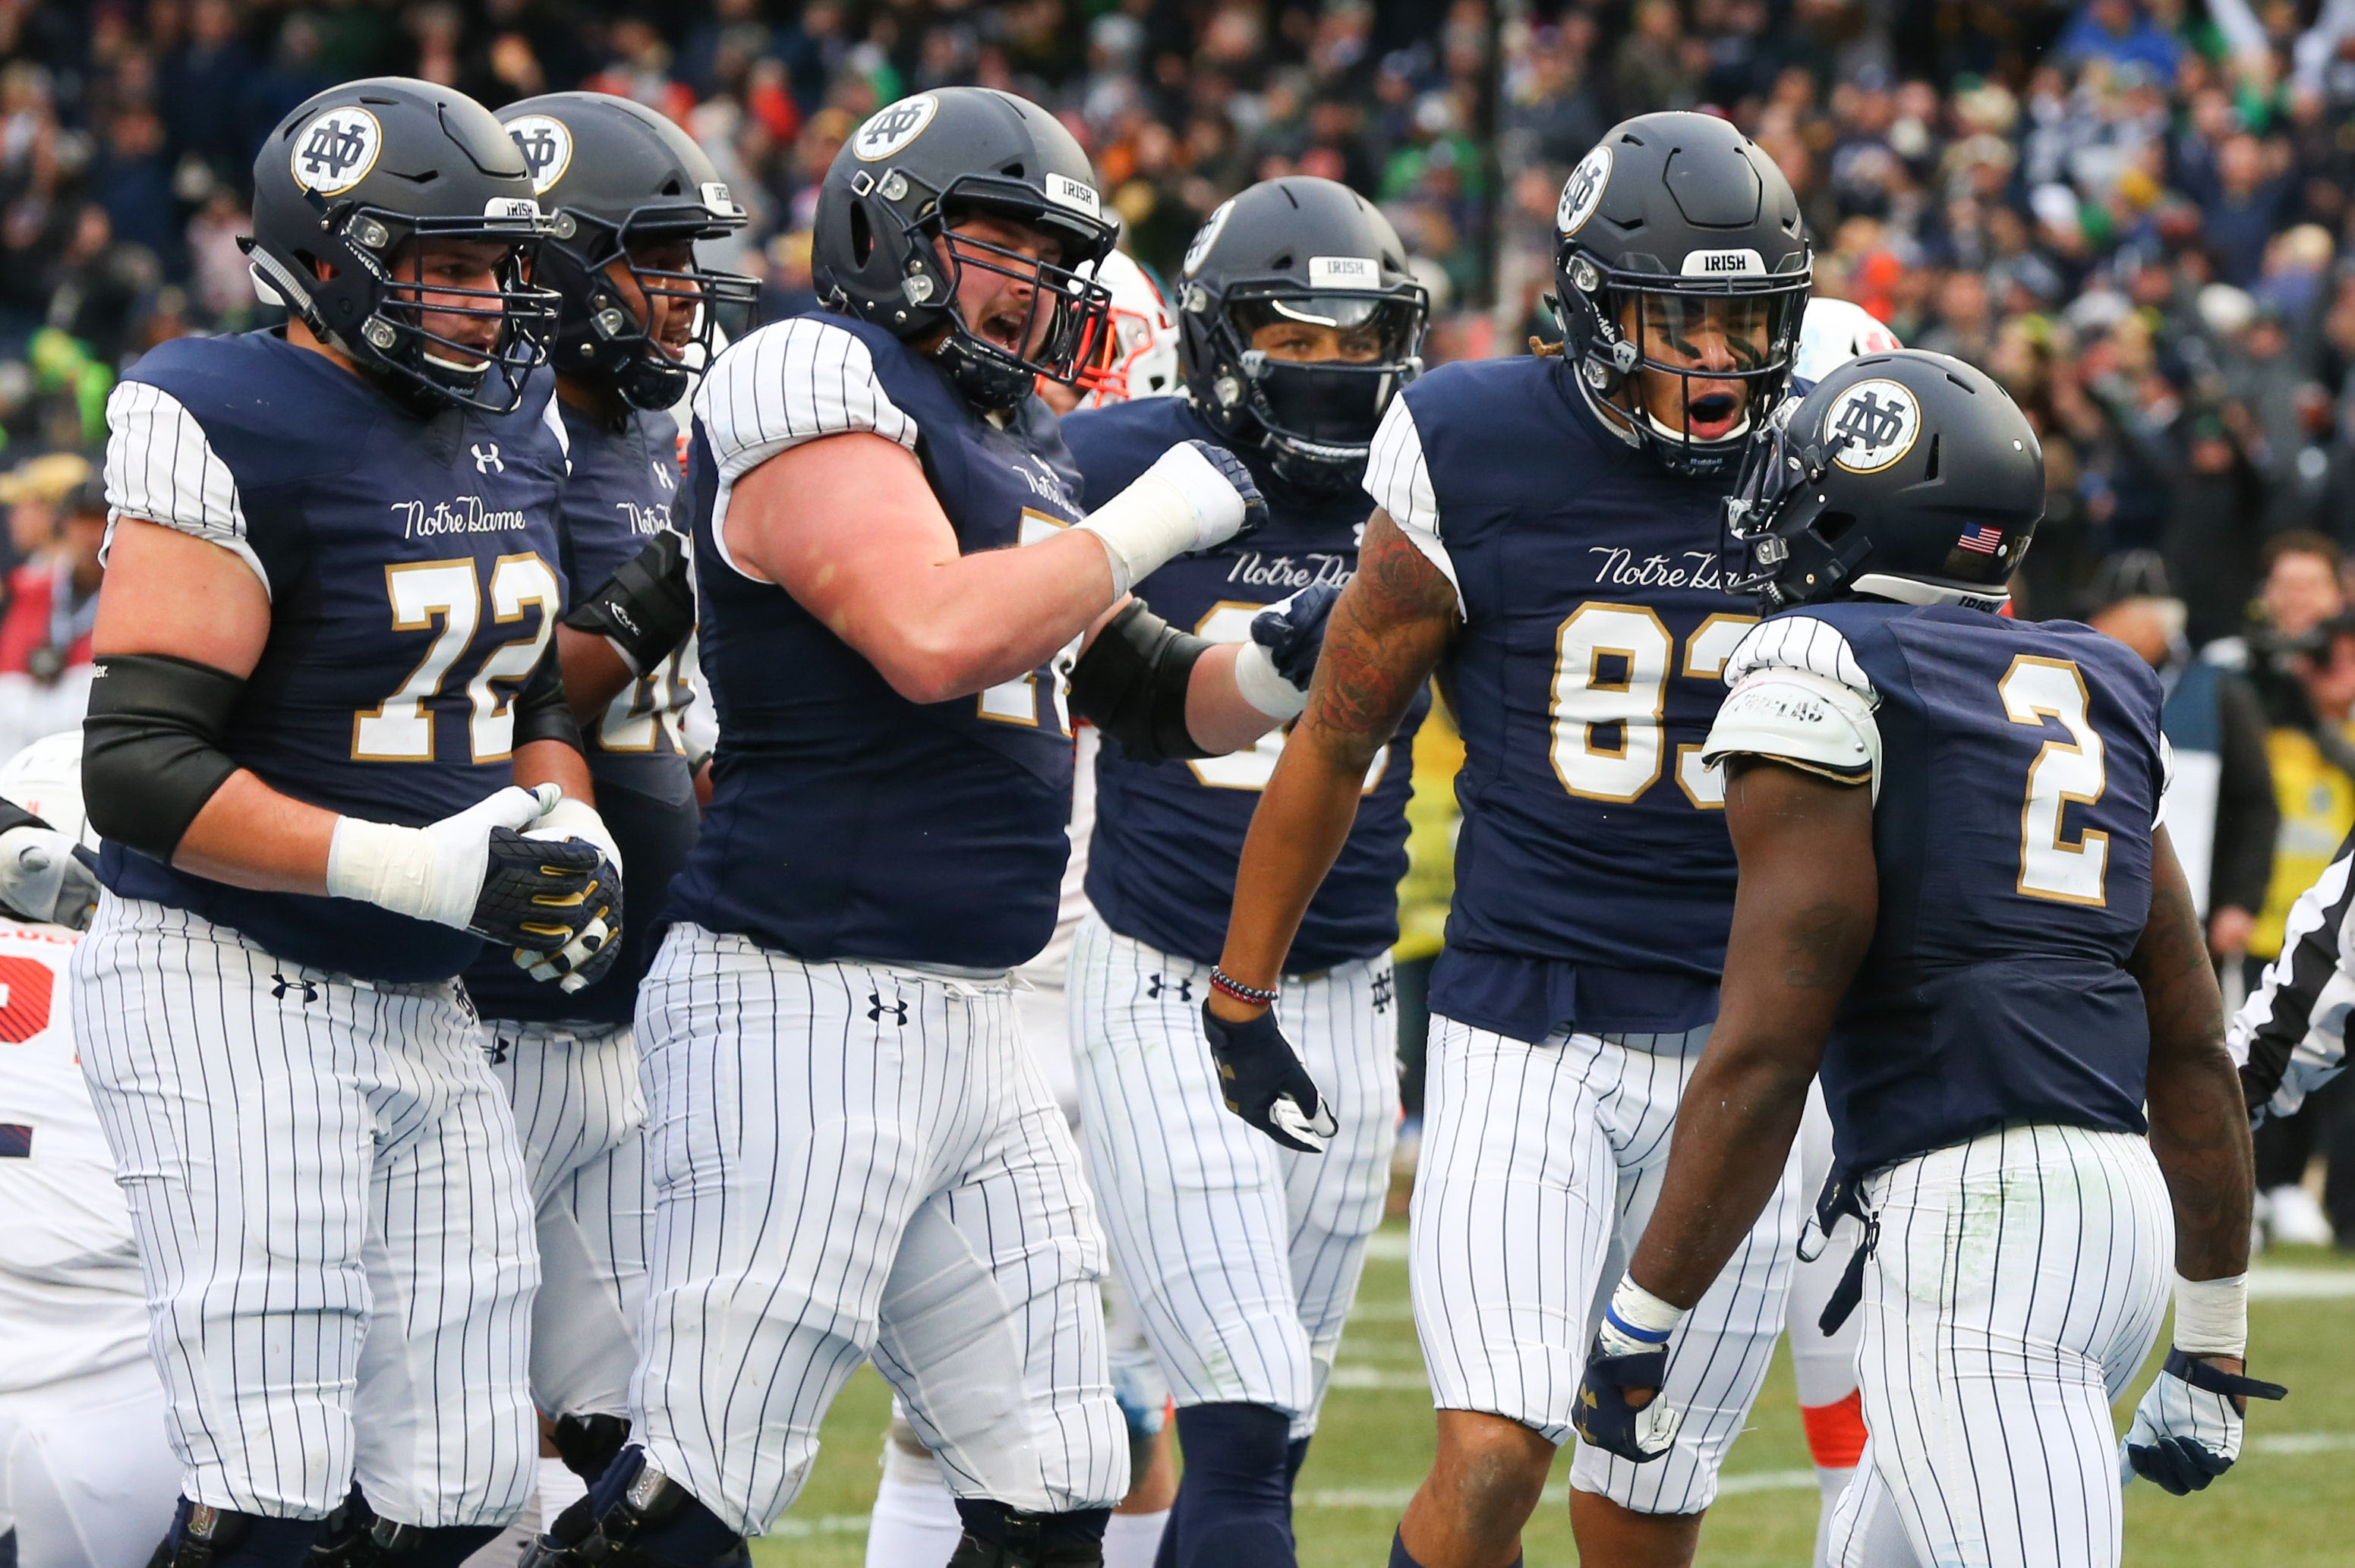 Image result for notre dame pinstripe football uniforms pics